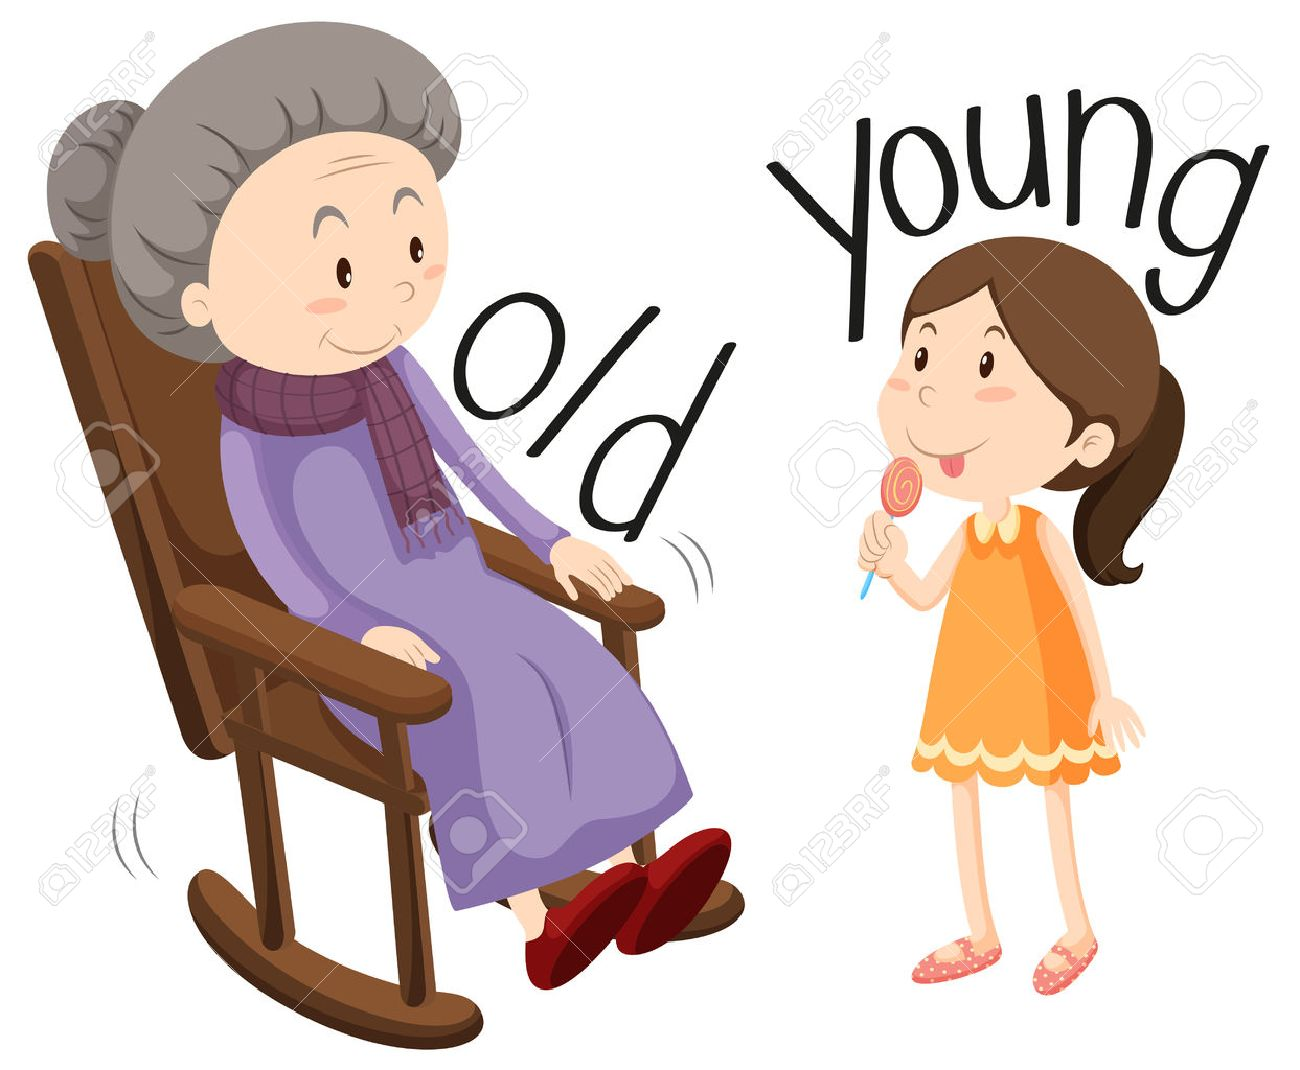 hight resolution of old woman and young girl illustration stock vector 49135231